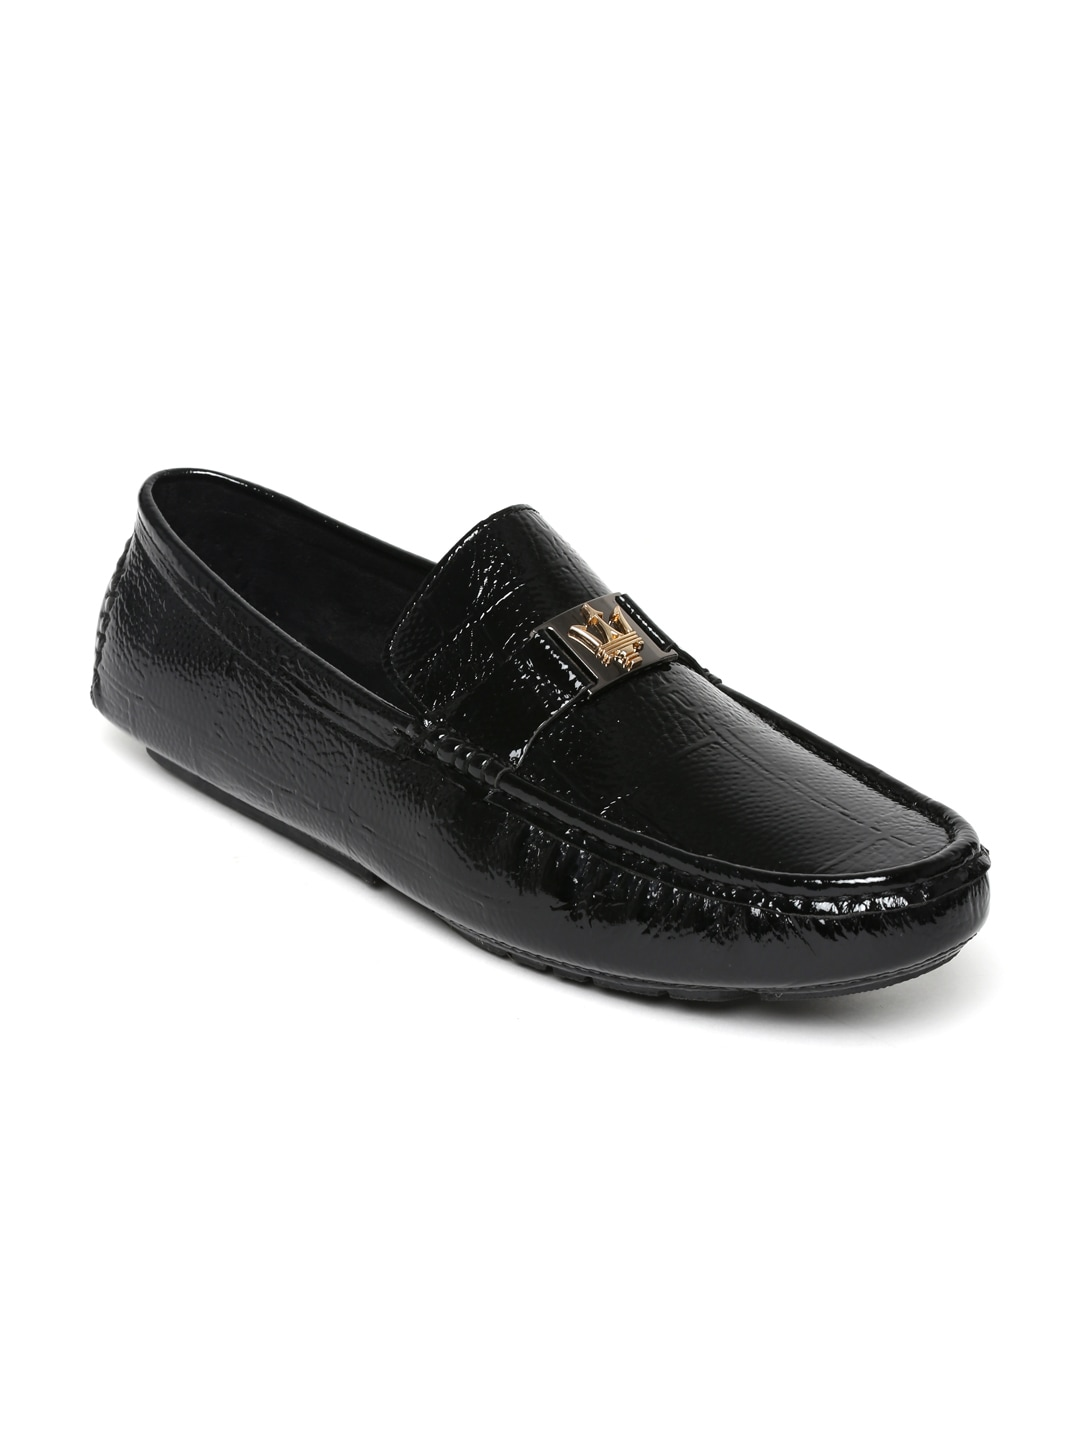 San Frissco Men Black Patent Leather Loafers